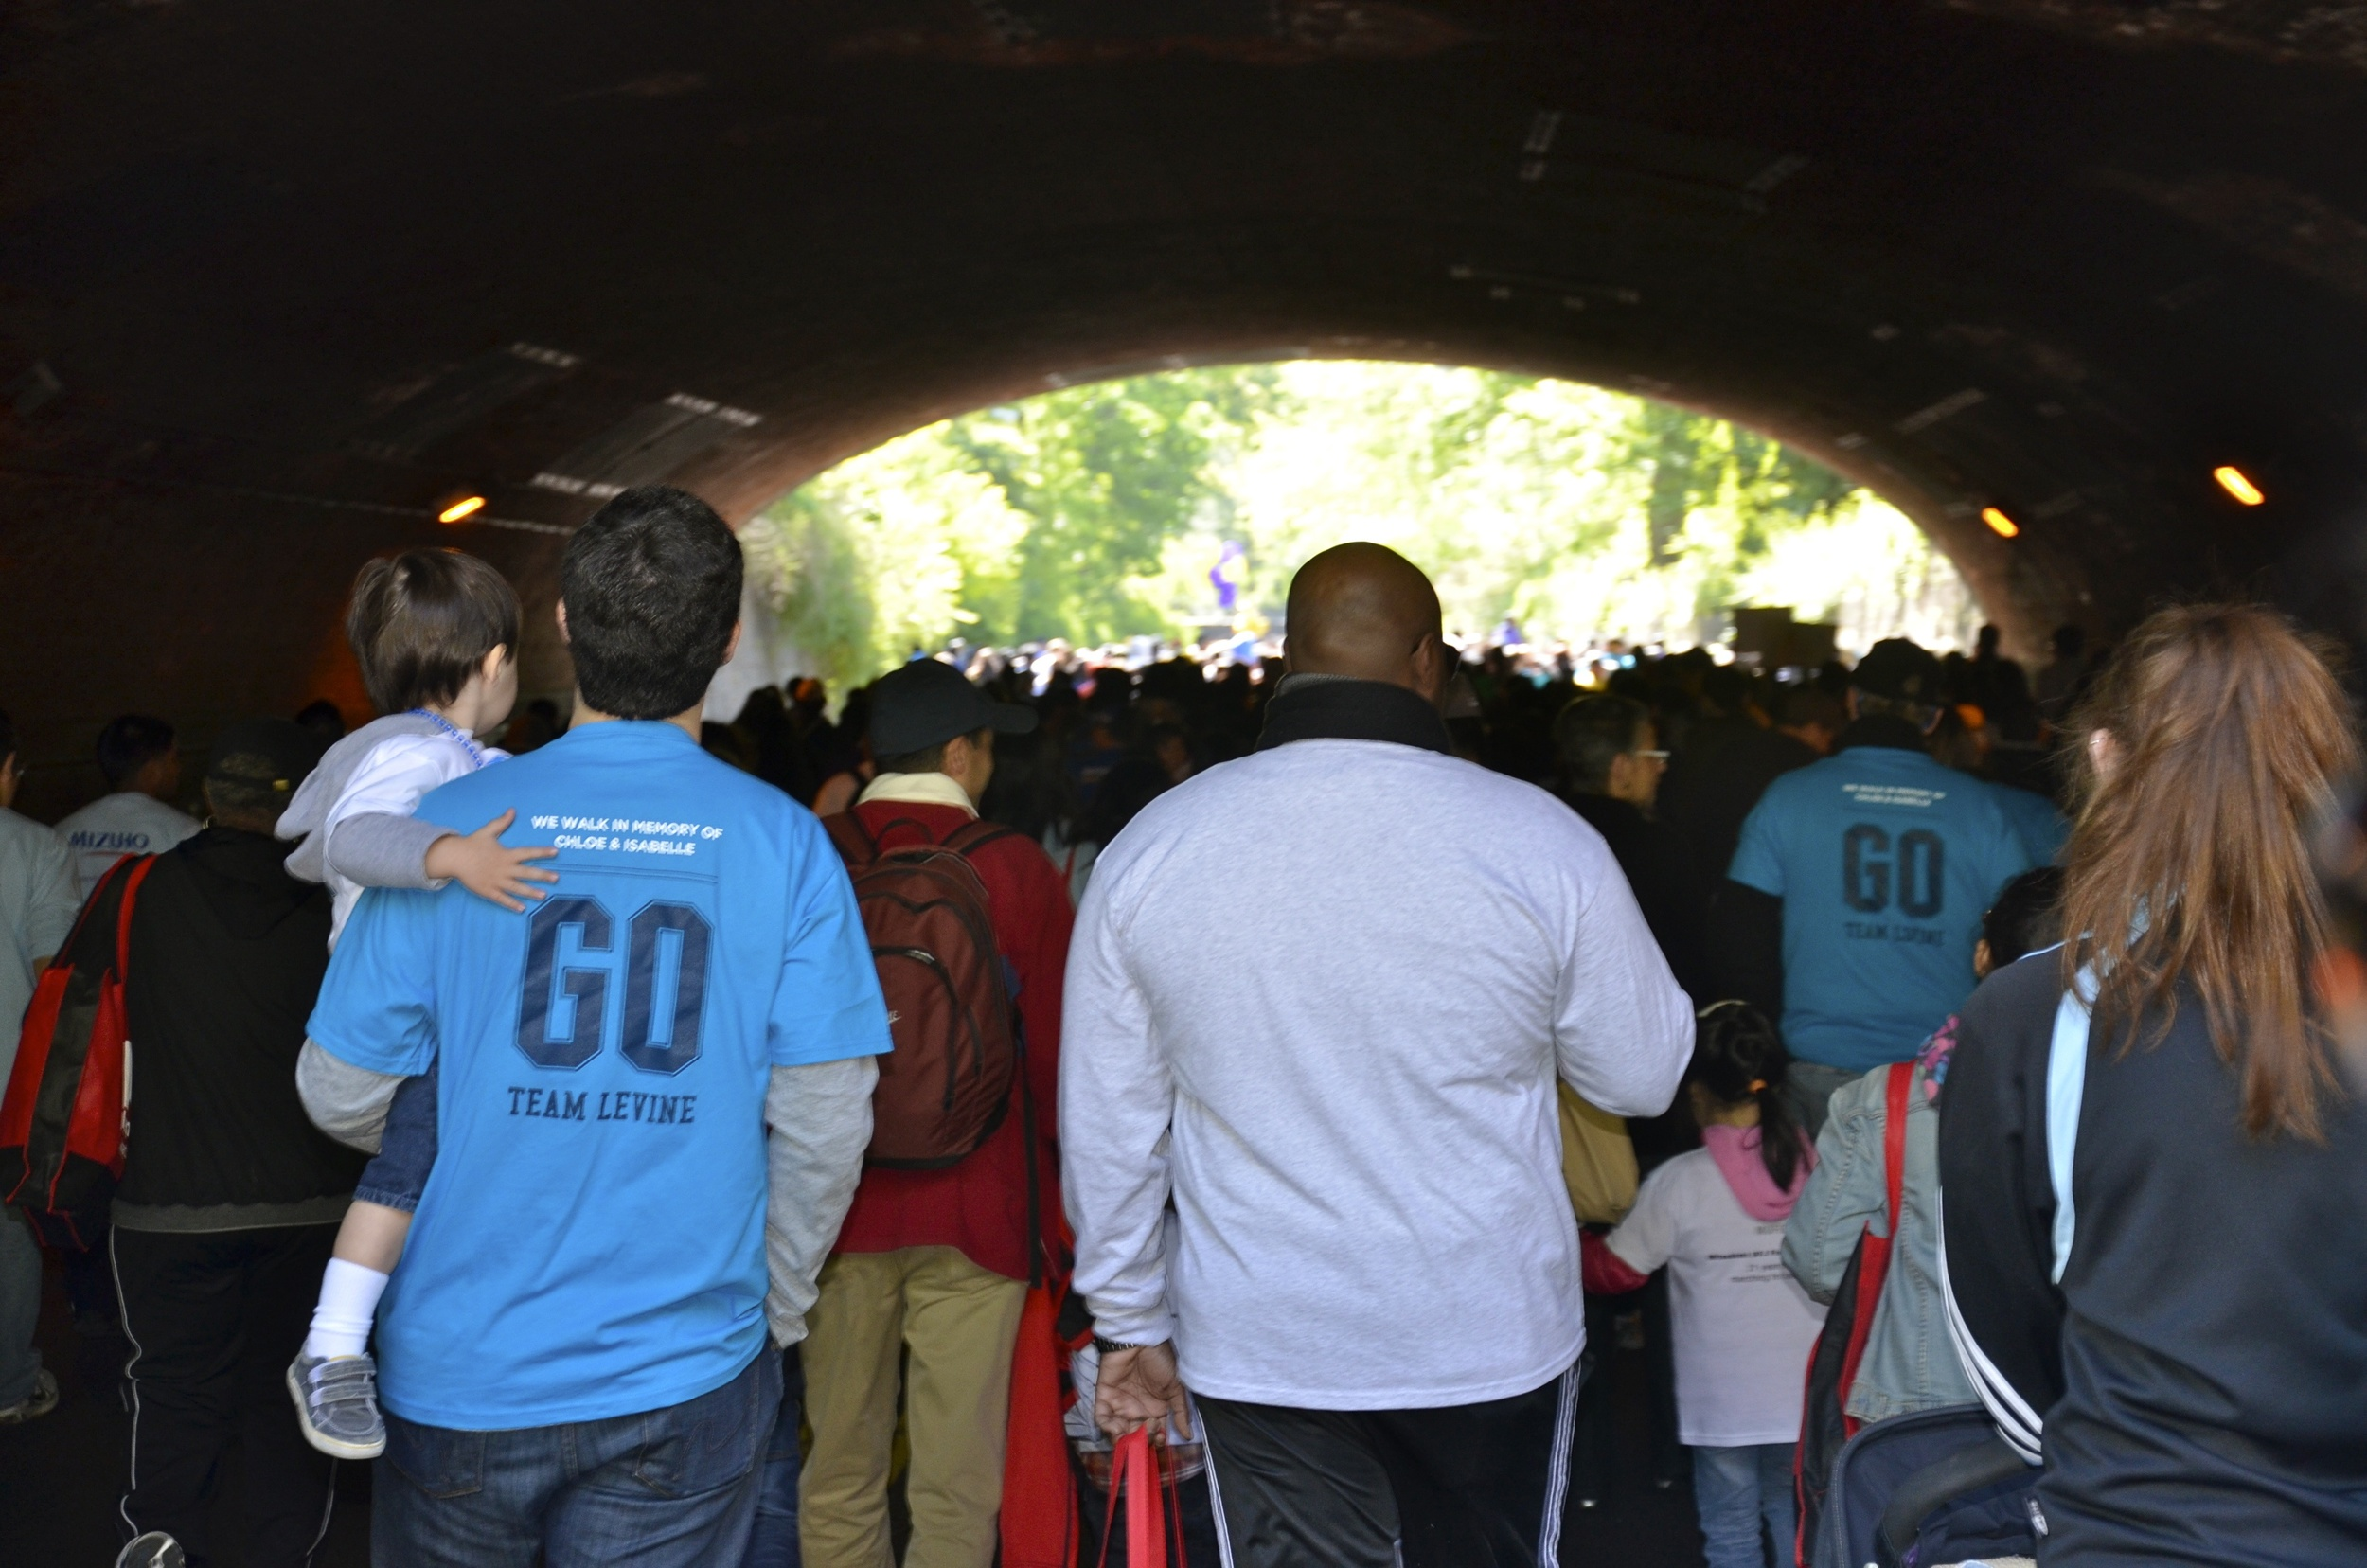 josh--julian-levine-and-other-2012-march-for-babies-walkers-walking-through-central-park_8540258950_o.jpg